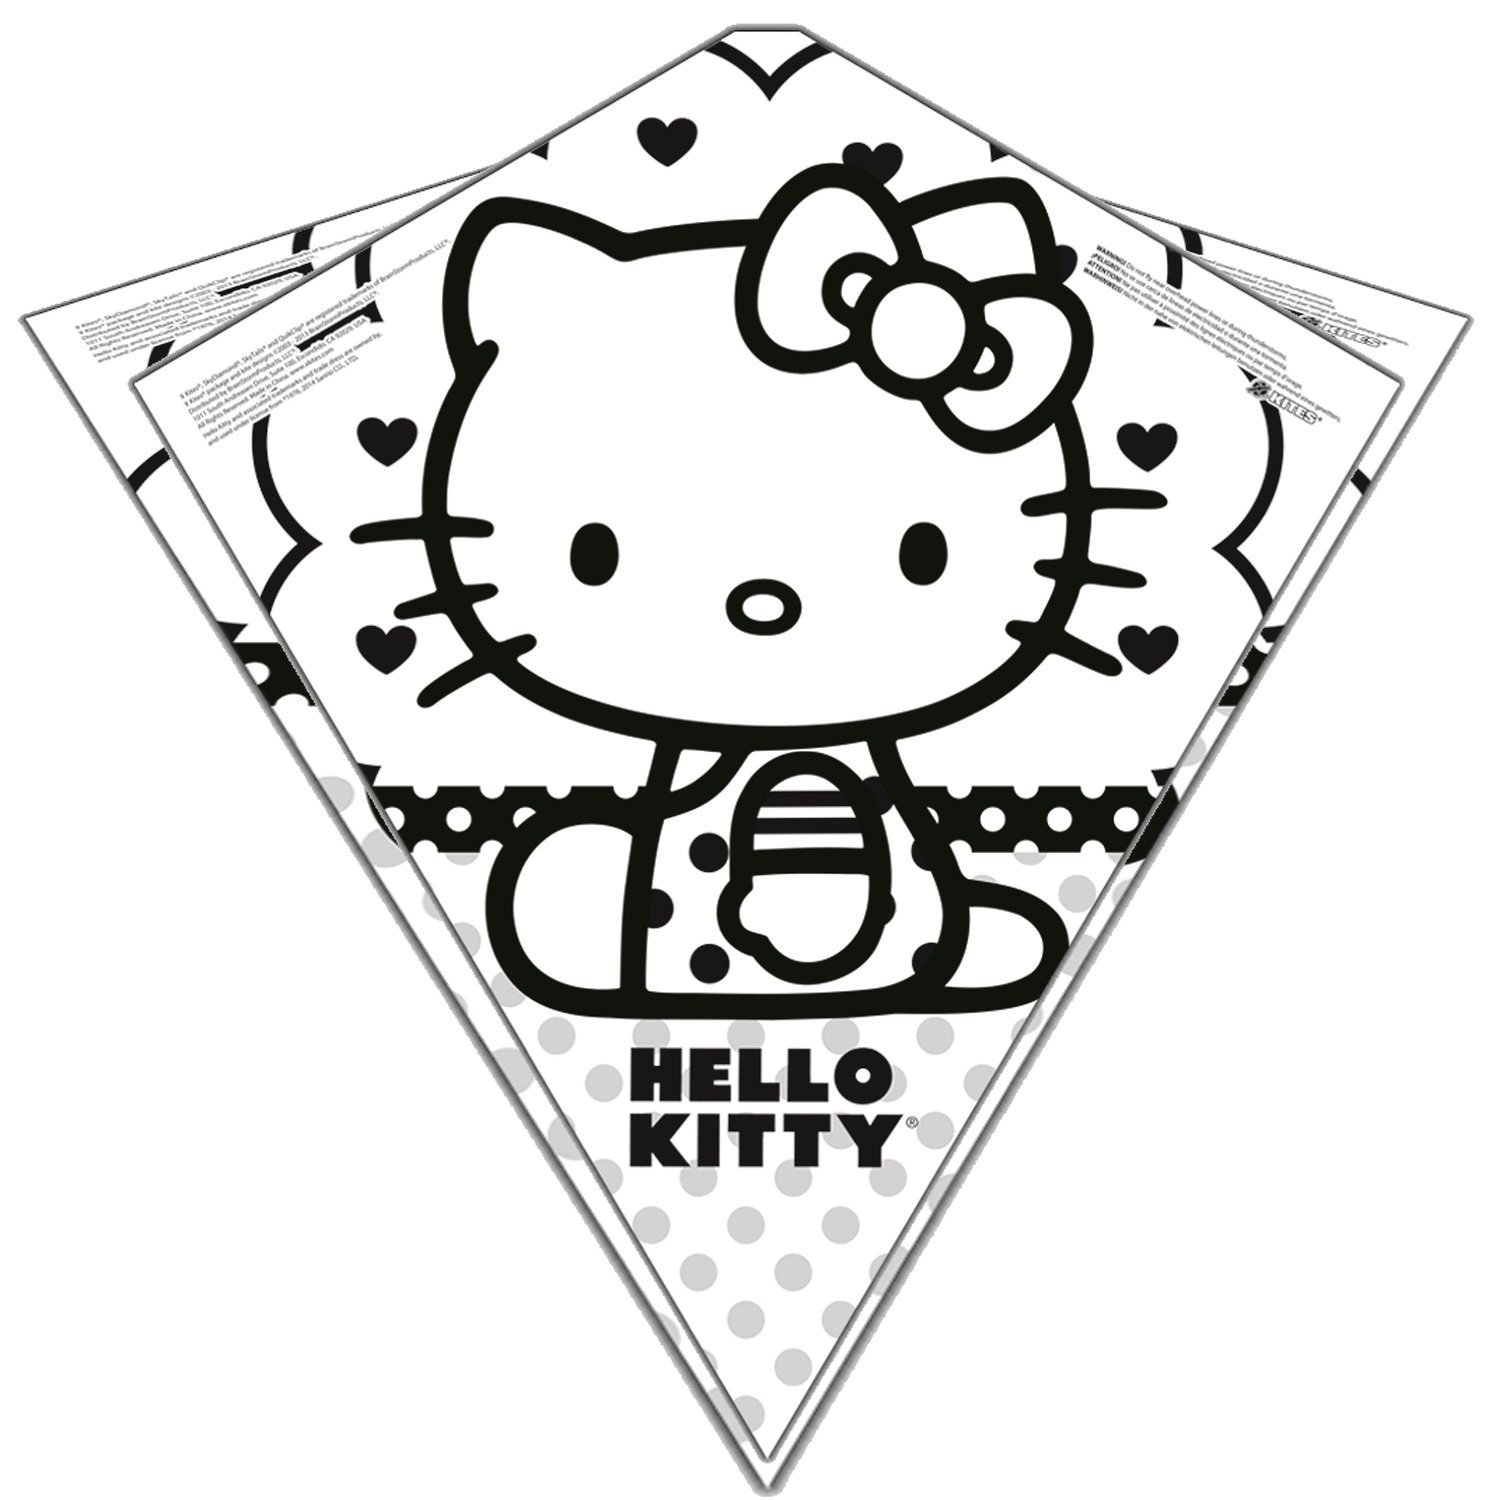 cheap kitty kite find kitty kite deals on line at alibaba Kite Parts Micro Carbon Rods get quotations color me kite 26 inches tyvek diamond kite hello kitty